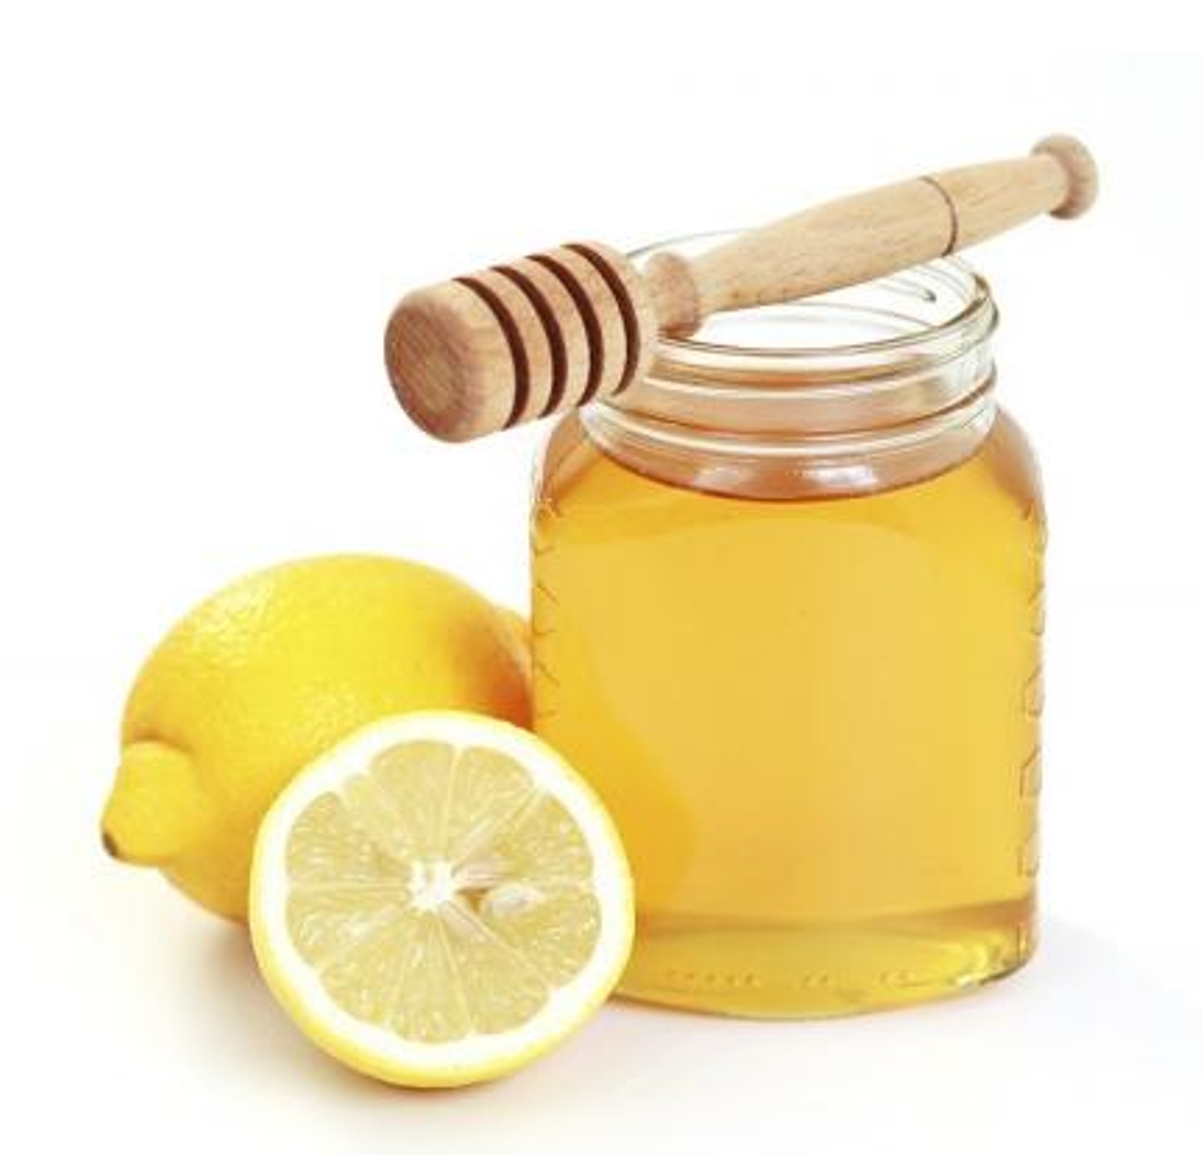 Honey to end dark spot